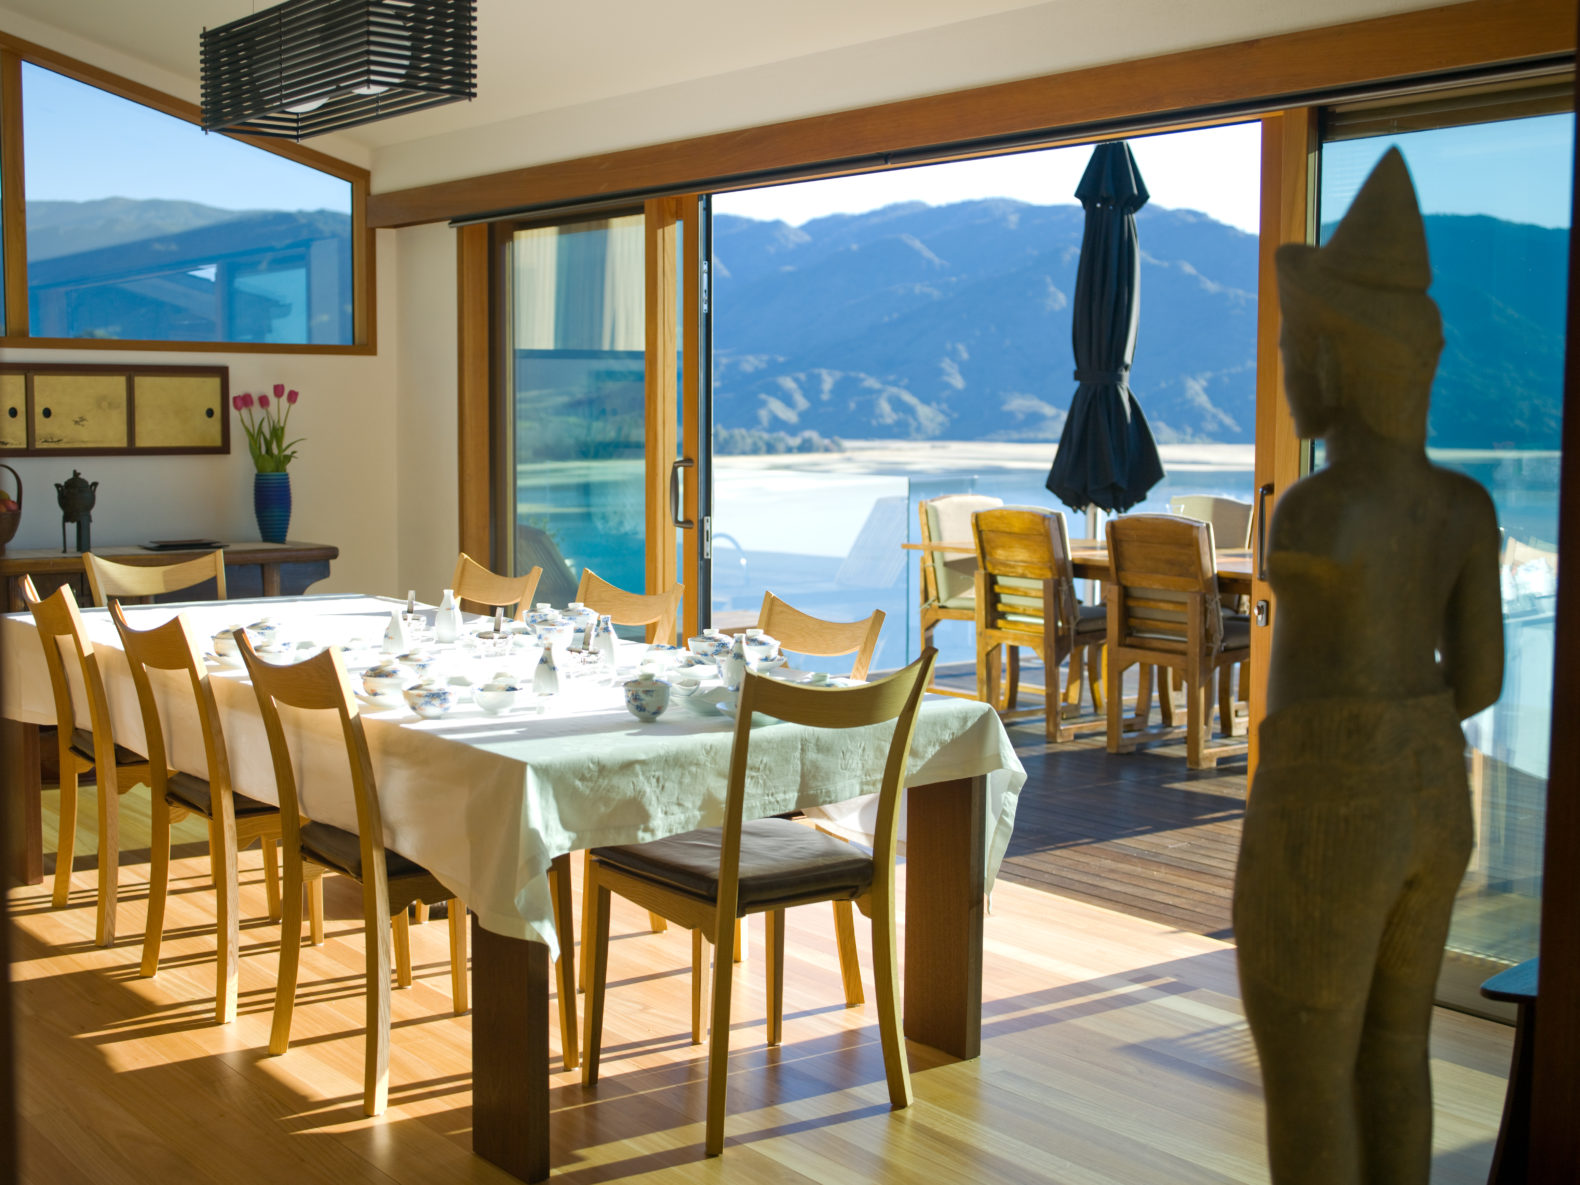 dining-room-ocean-hill-view-open-windows-buddha-split-apple-retreat-new-zealand